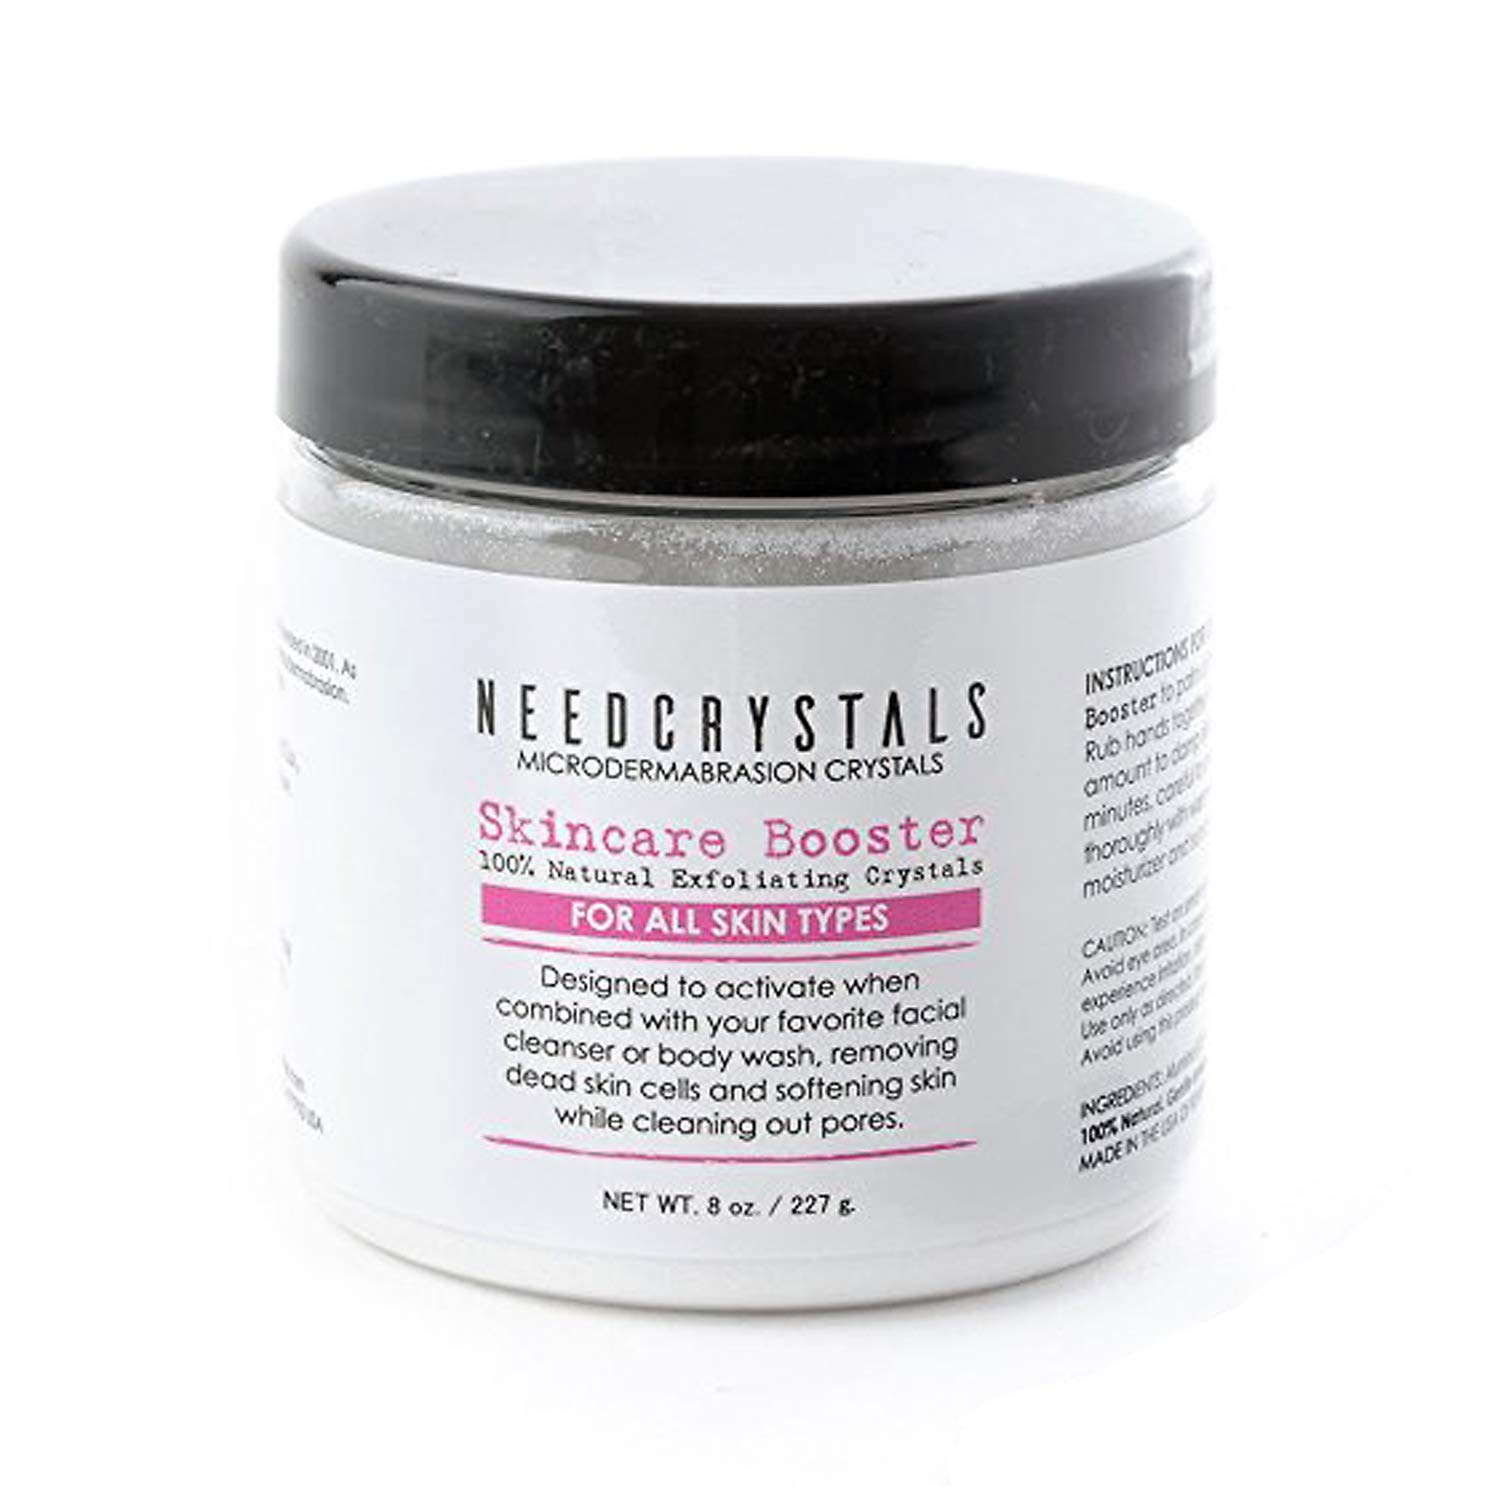 NeedCrystals Microdermabrasion Crystals, DIY Face Scrub. Natural Facial Exfoliator for Dull or Dry Skin Improves Acne Scars, Blackheads, Pore Size, Wrinkles, Blemishes & Skin Texture. 4 oz 4OZWAO120